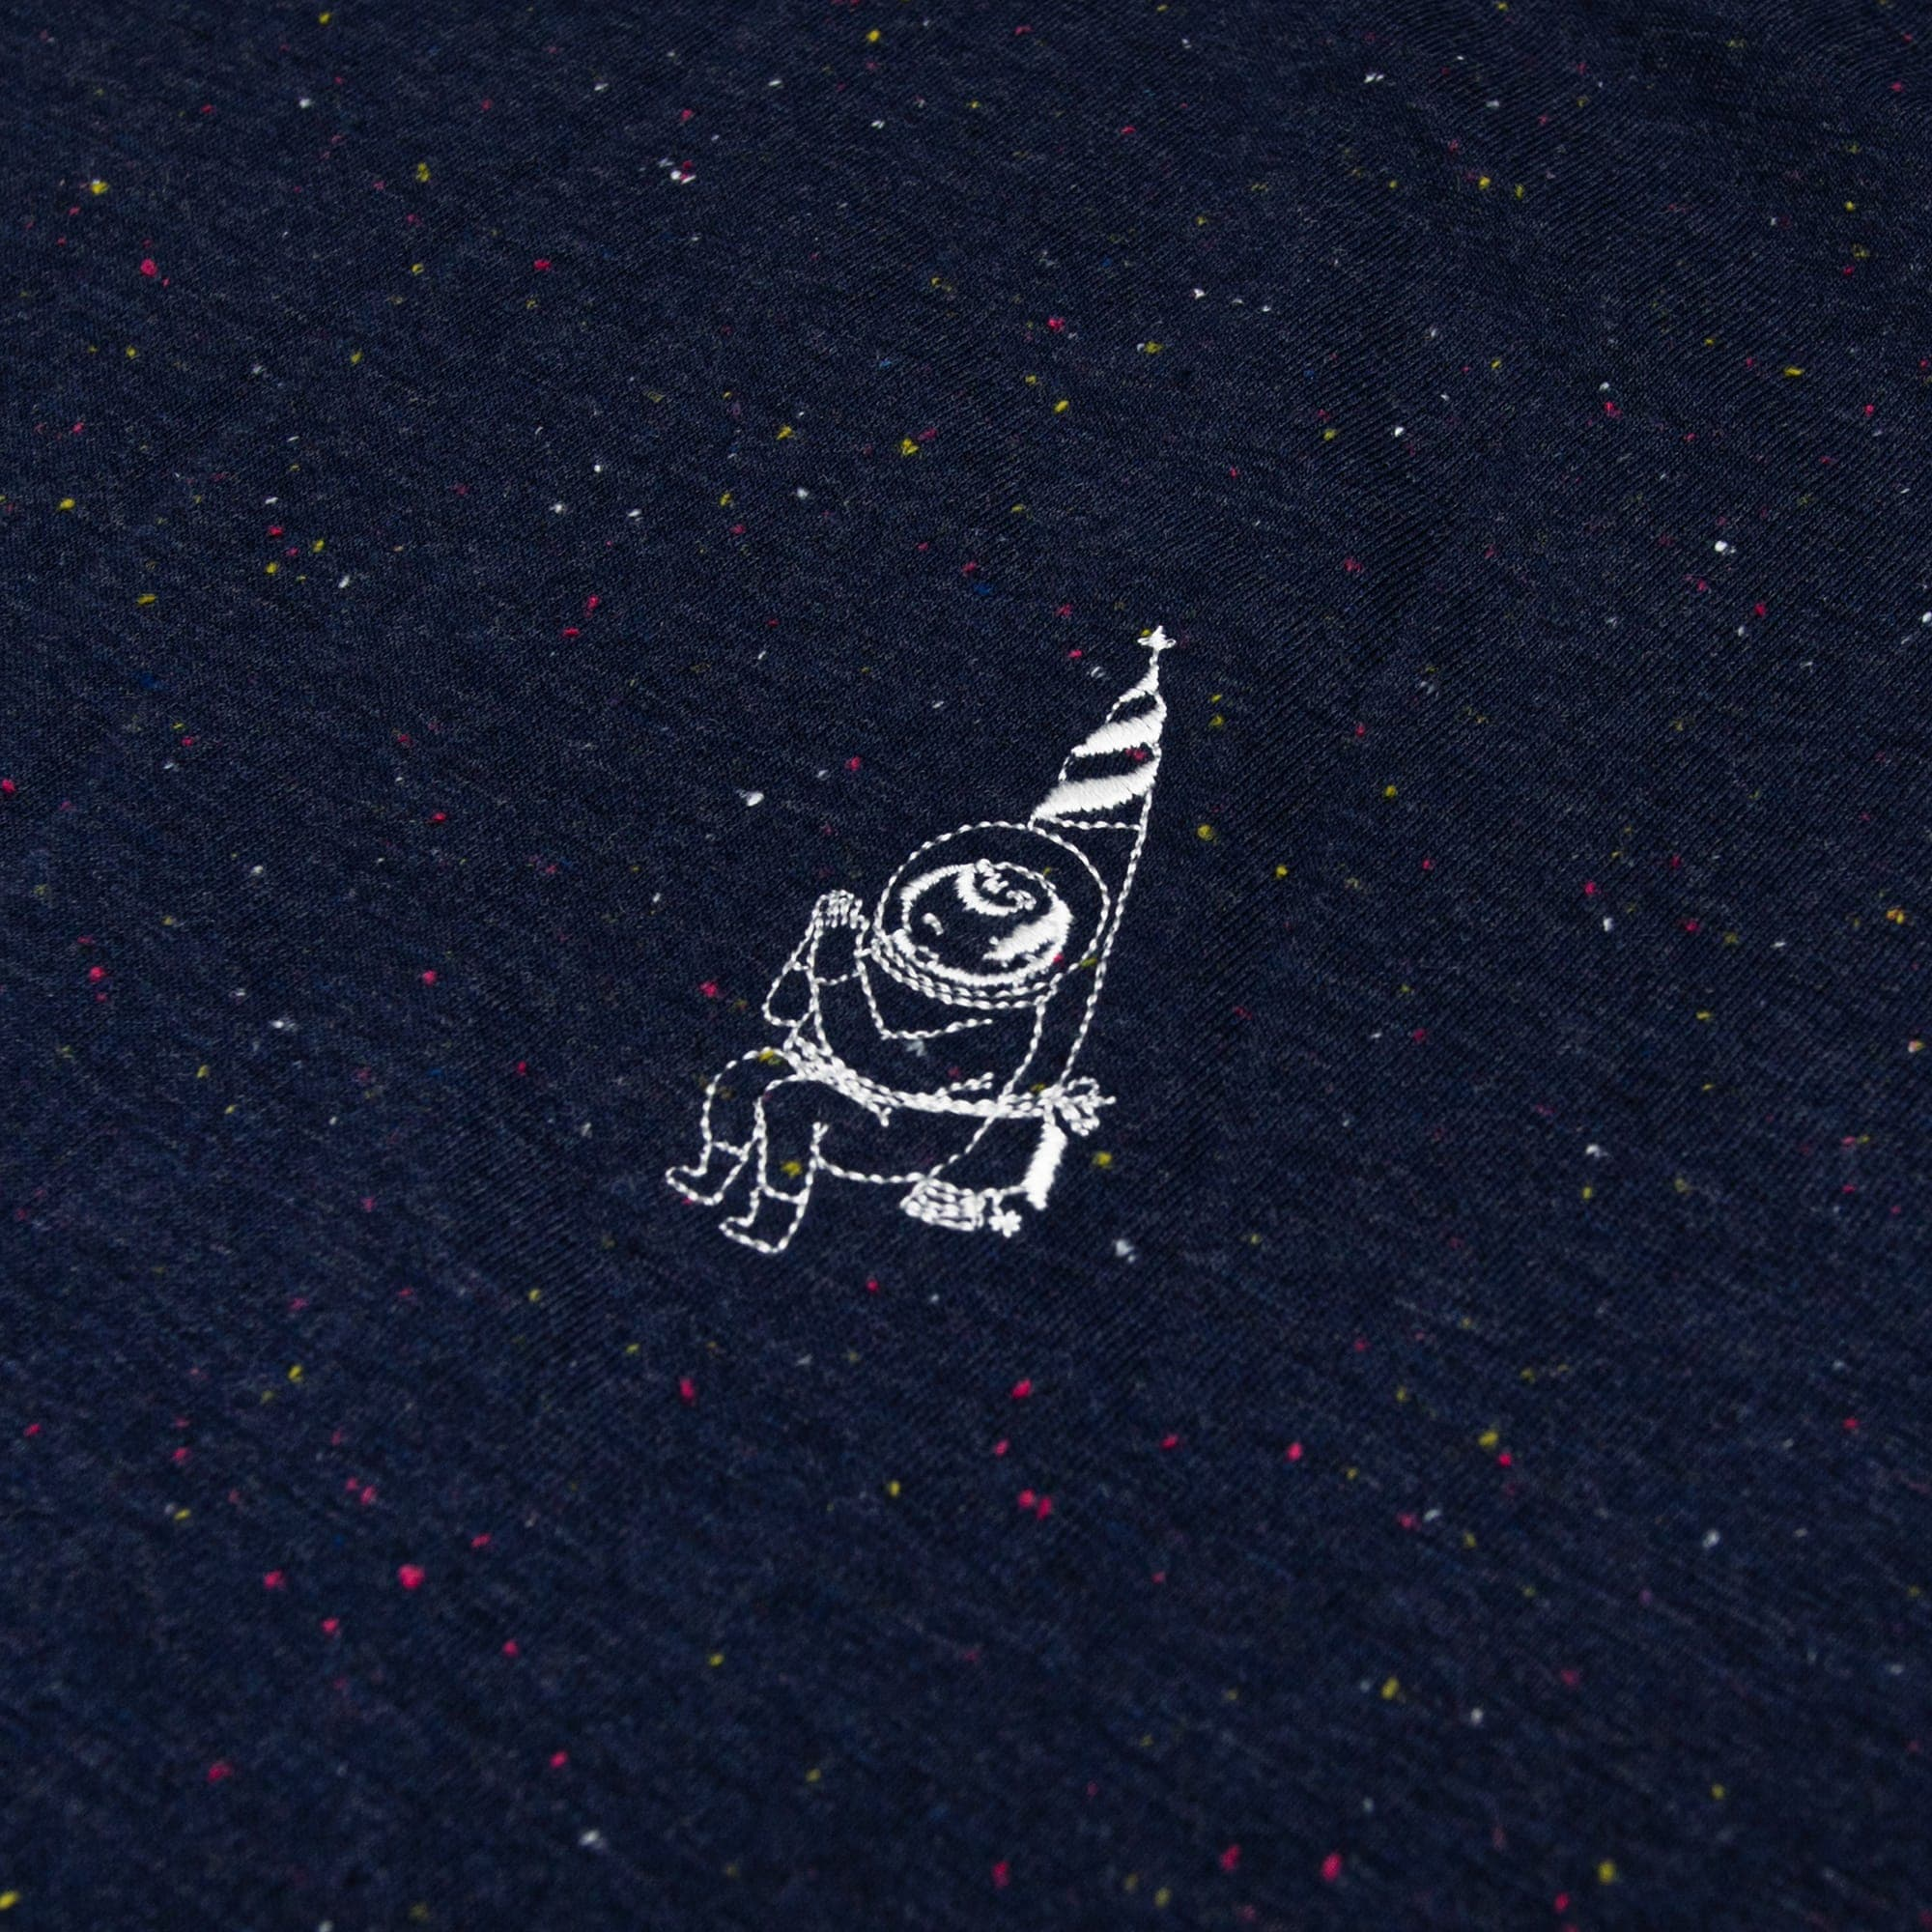 Rocket Man Embroidery Tee